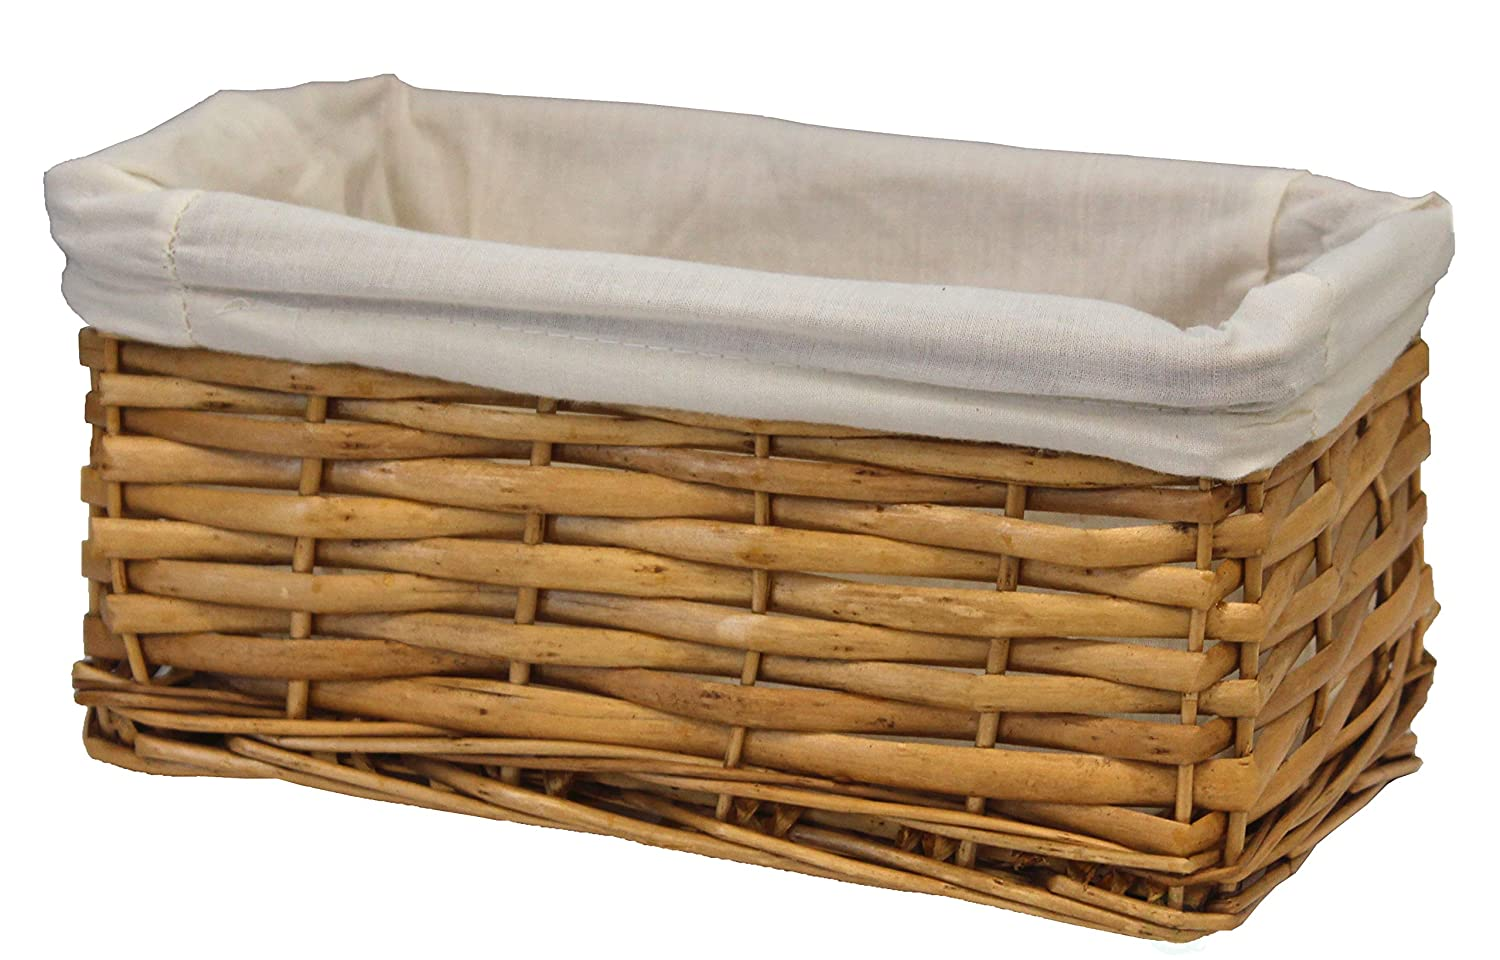 Vintiquewise Willow Shelf Basket Lined with White Lining (Set of 3 Small Baskets) Quickway Imports QI003052.3